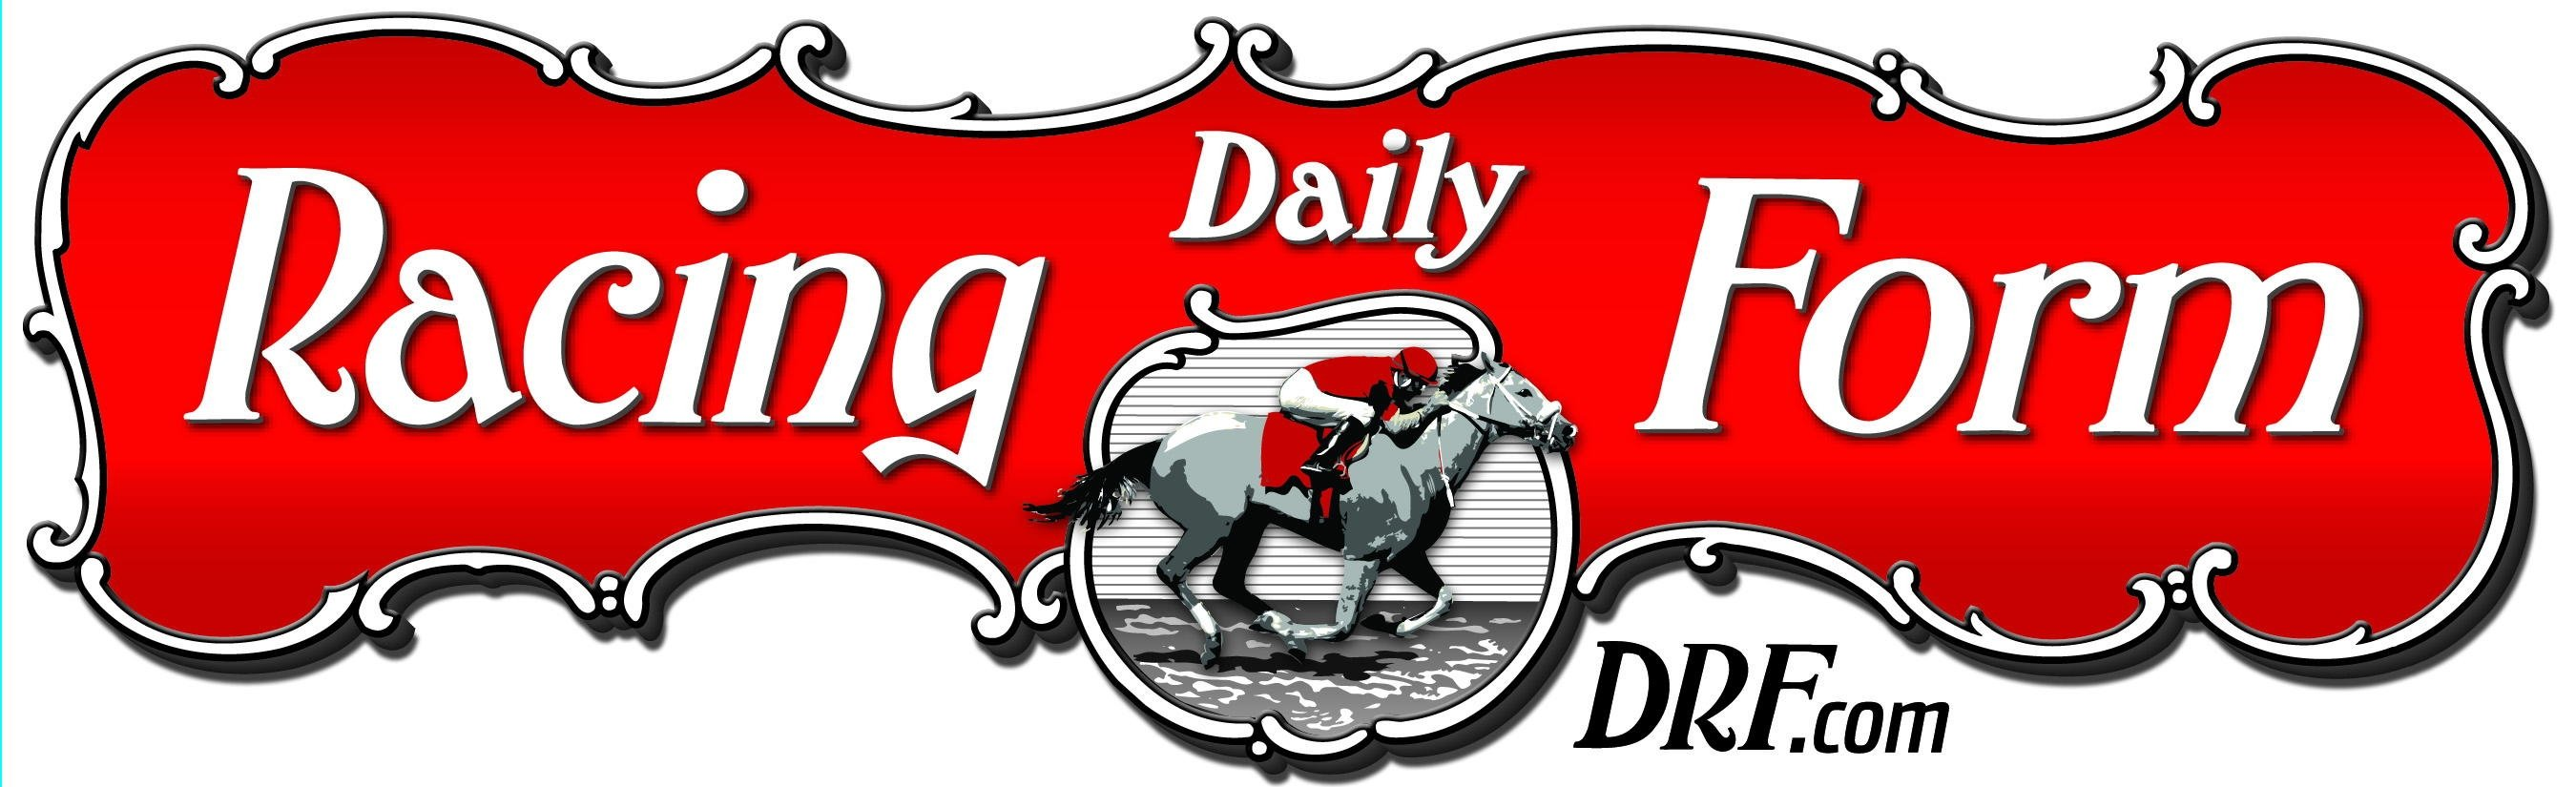 Daily Racing Form experts! - WDRB 41 Louisville News